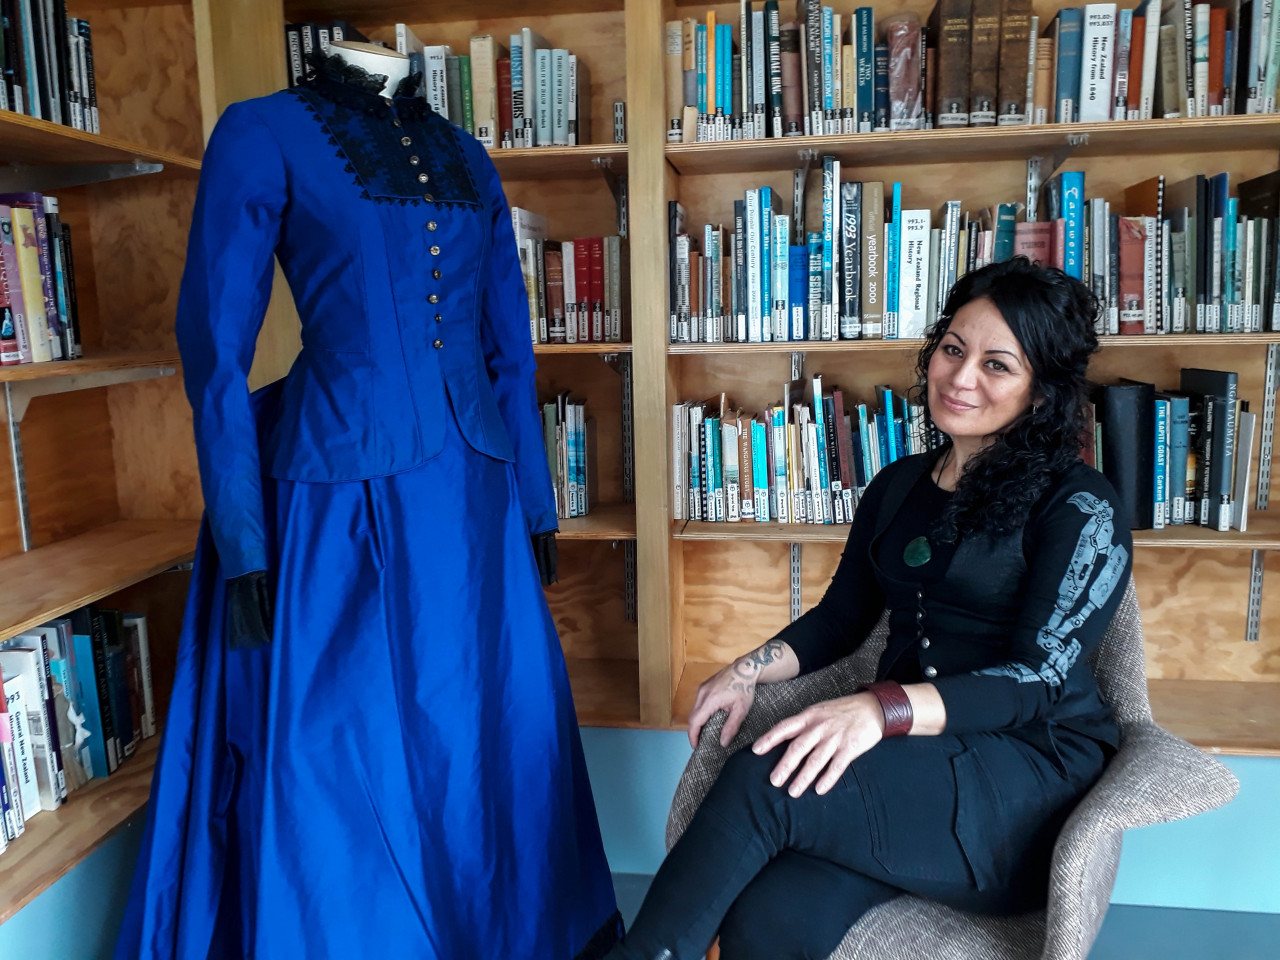 I interviewed Lee Williams in the research library of the Whanganui Regional Museum. The museum's curator, Trish Nugent-Lyne, was kind enough to set up one of the original dresses that Samantha Morton wore in River Queen.